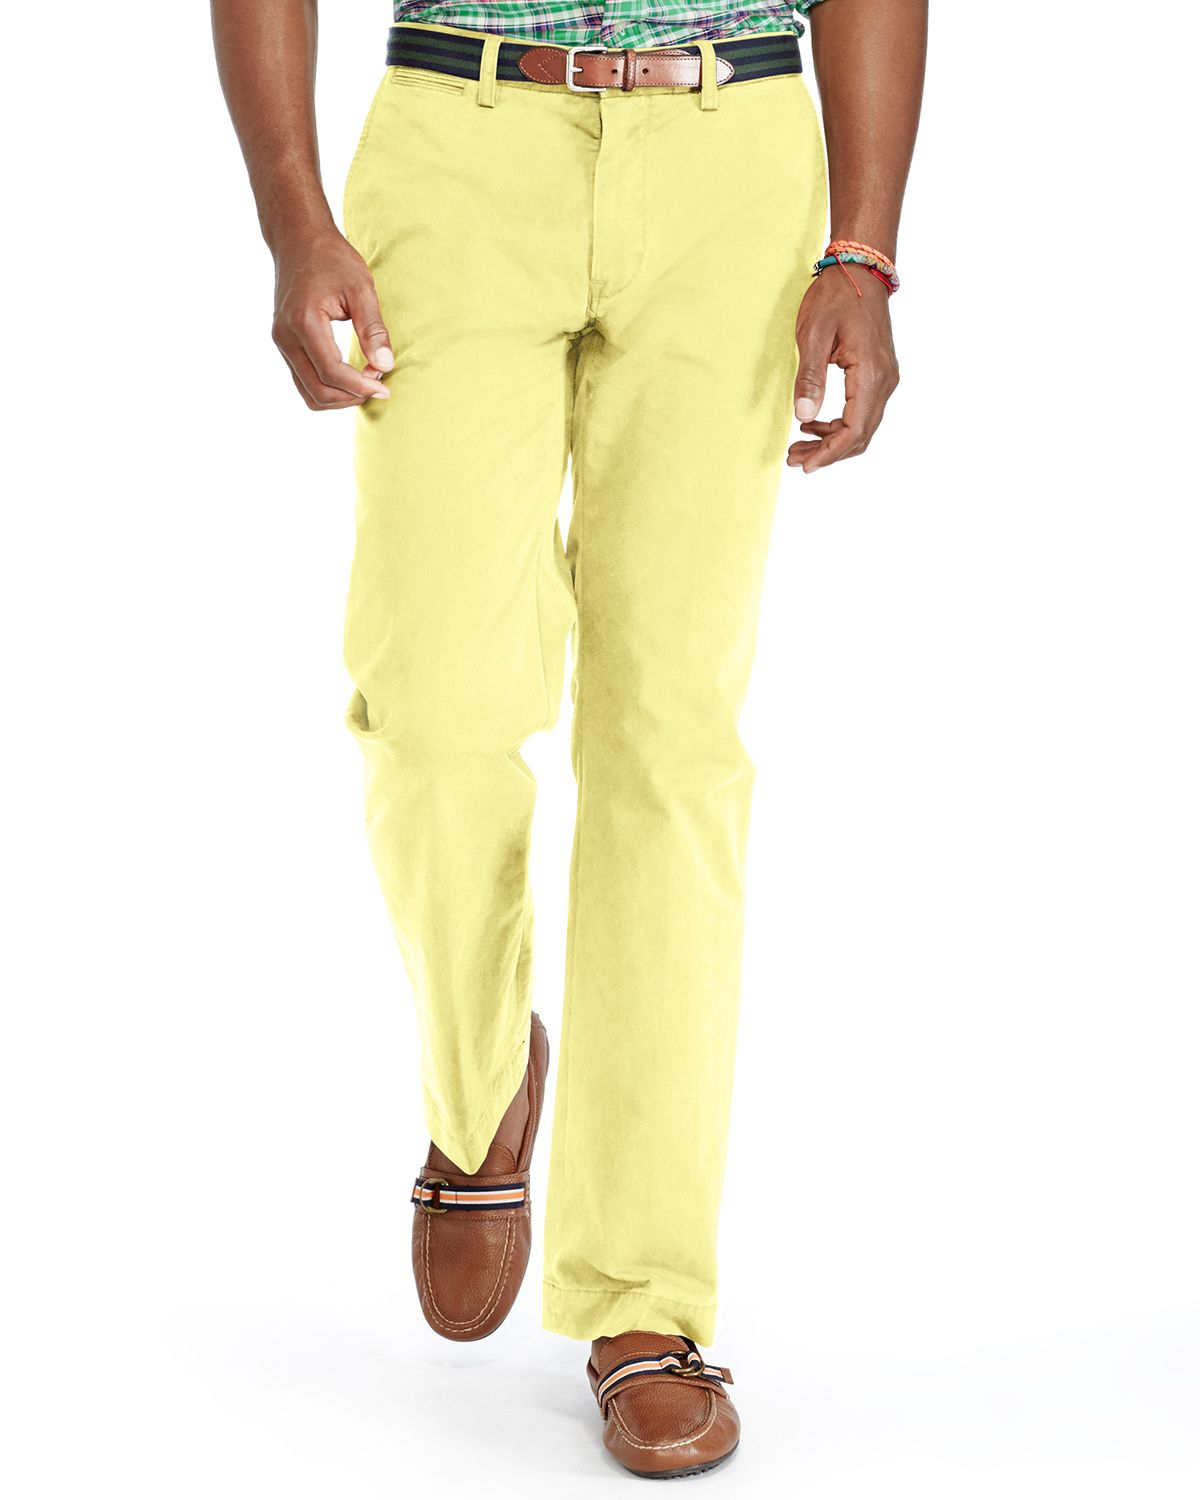 You searched for: mens yellow pants! Etsy is the home to thousands of handmade, vintage, and one-of-a-kind products and gifts related to your search. No matter what you're looking for or where you are in the world, our global marketplace of sellers can help you find unique and affordable options.